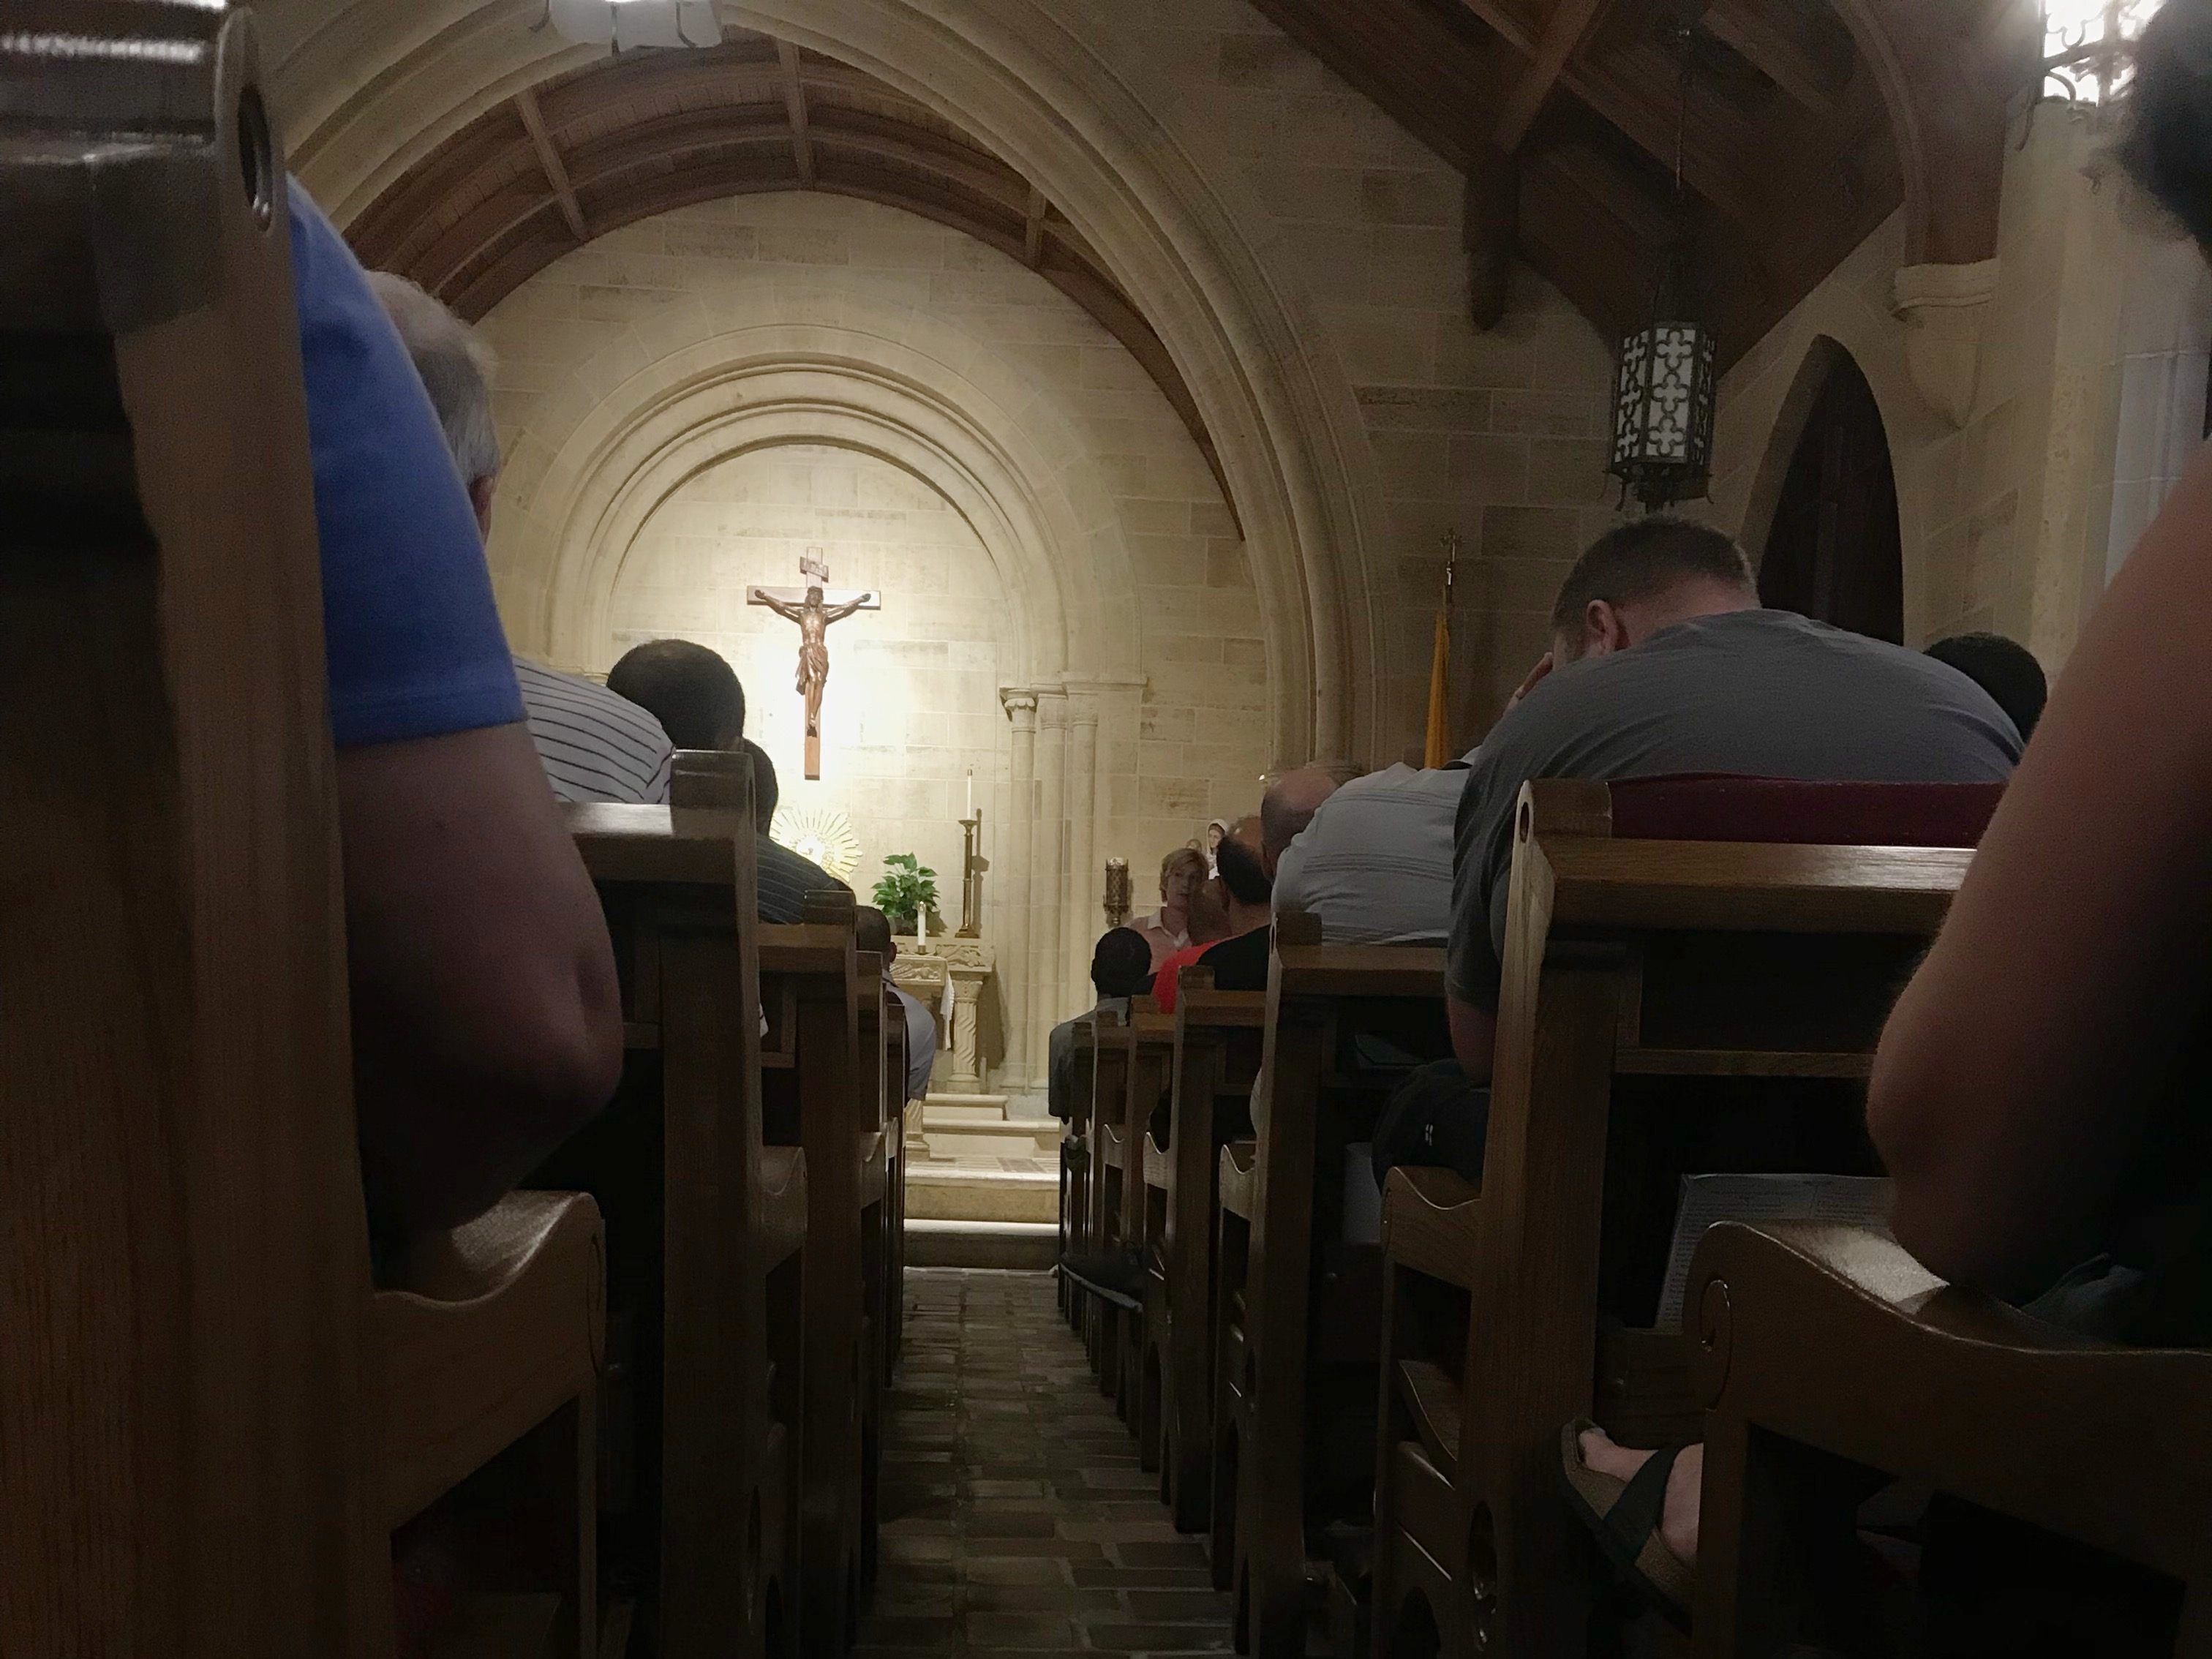 teachers in pews at Mass with light shining on cross